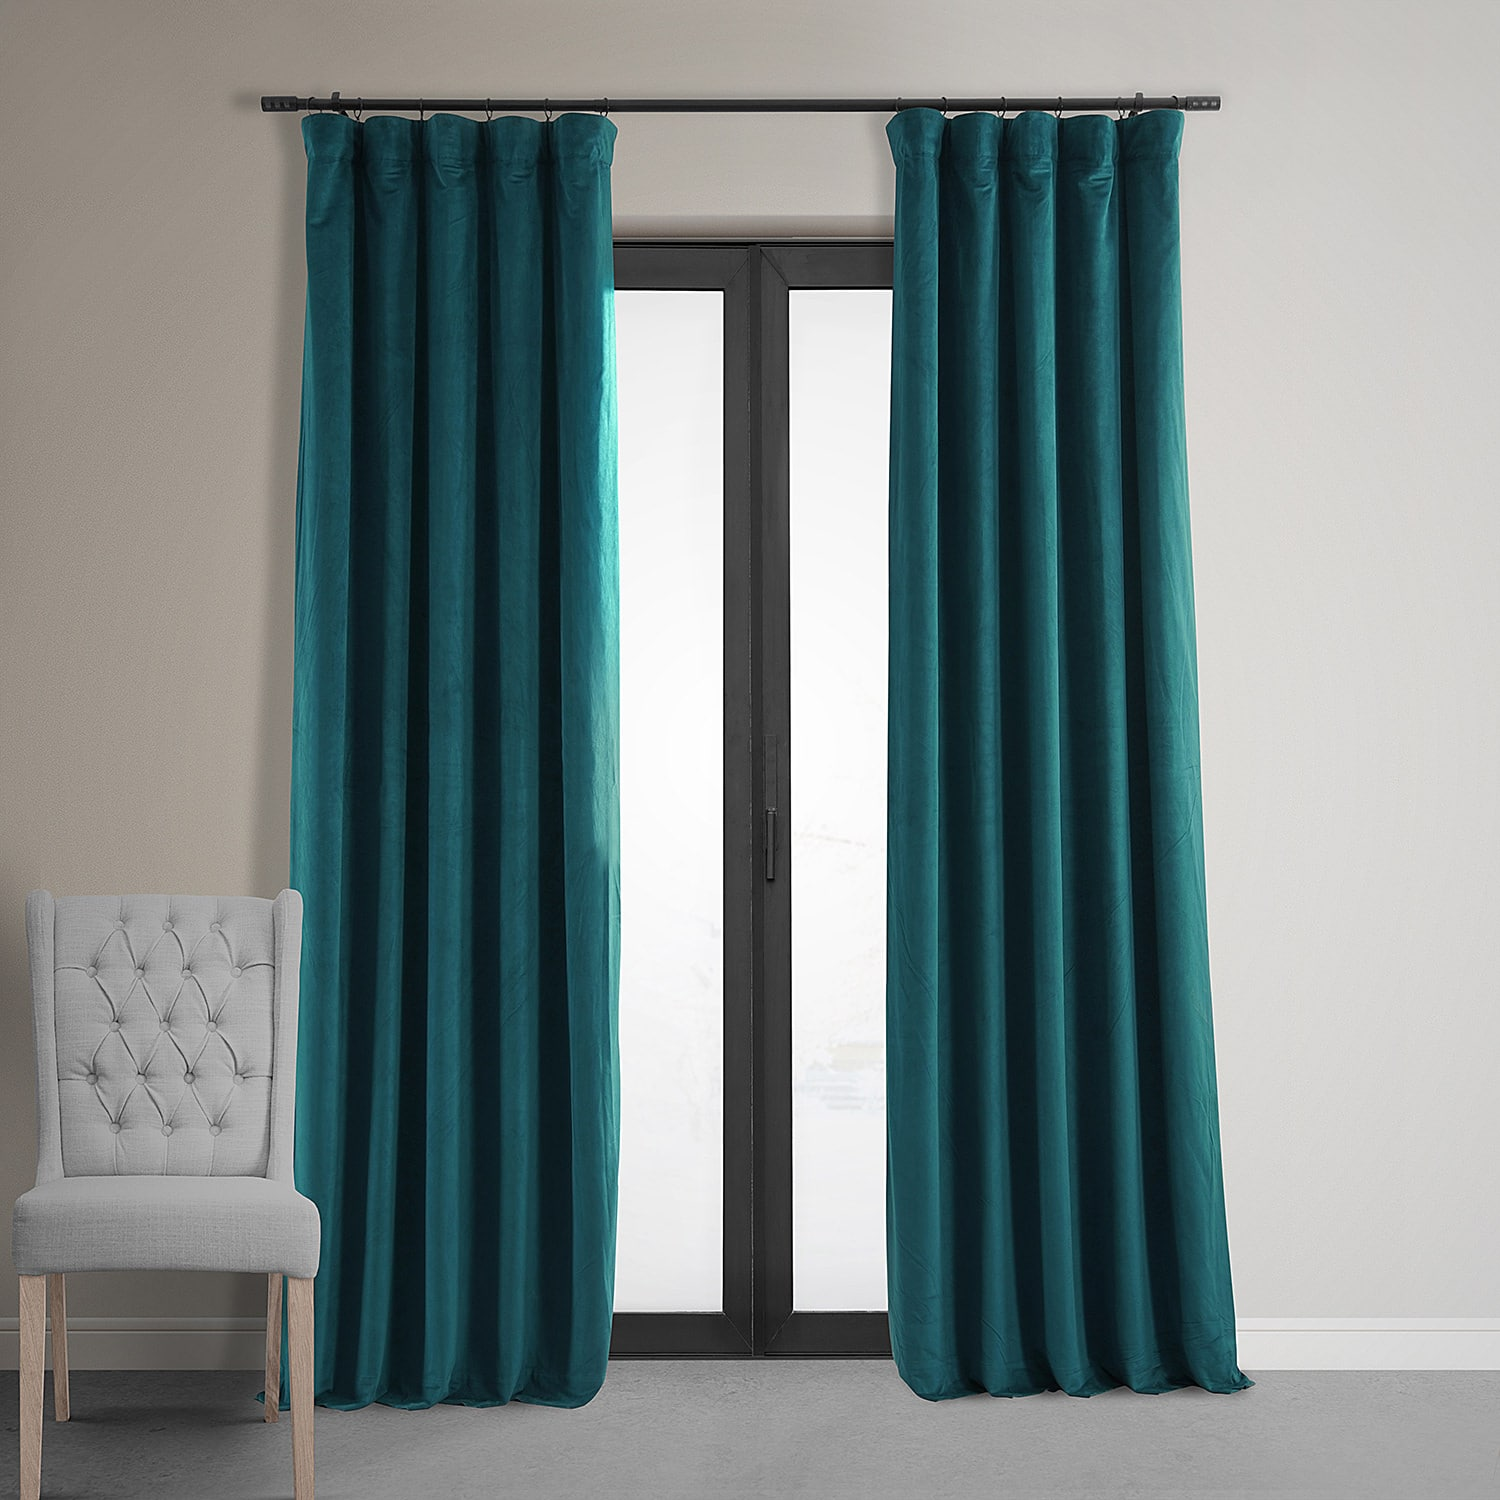 Teal Blackout Curtains Signature Everglade Teal Blackout Velvet Curtain